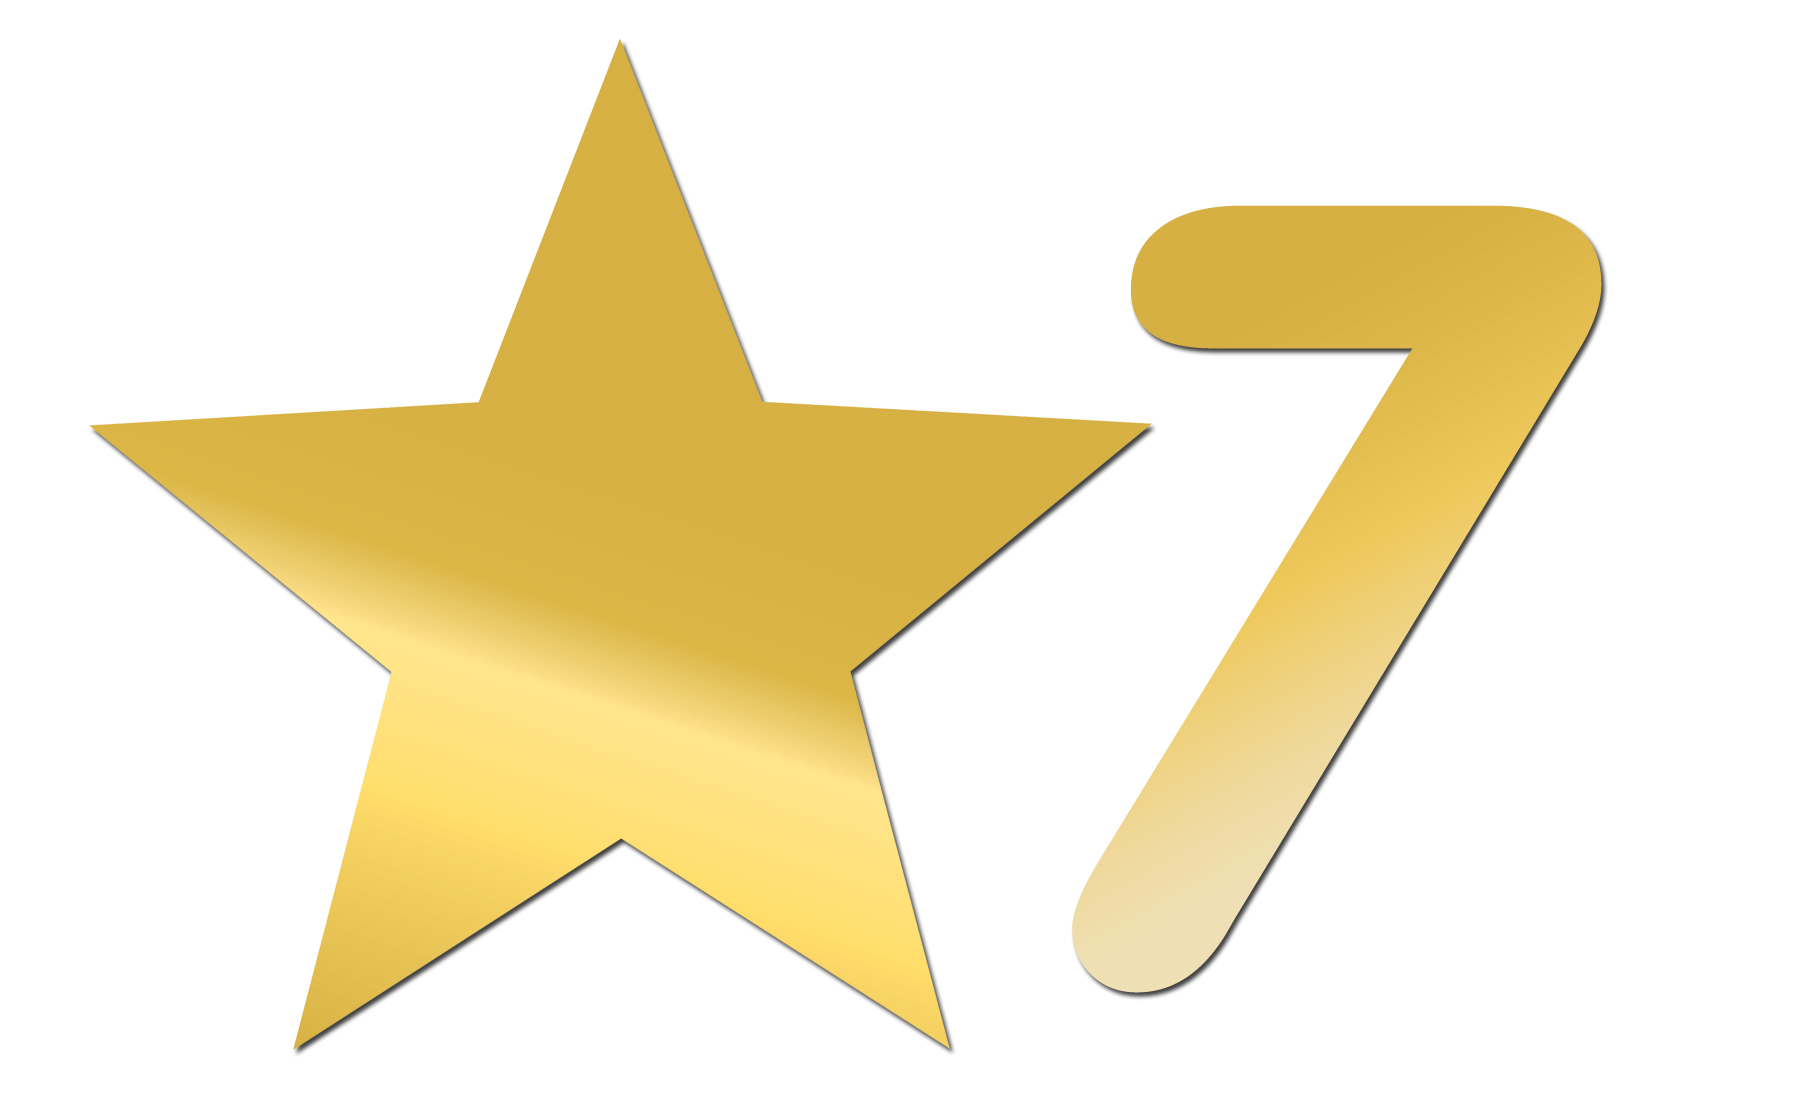 clipart free 7 clipart 7 star. Image stars harlow png